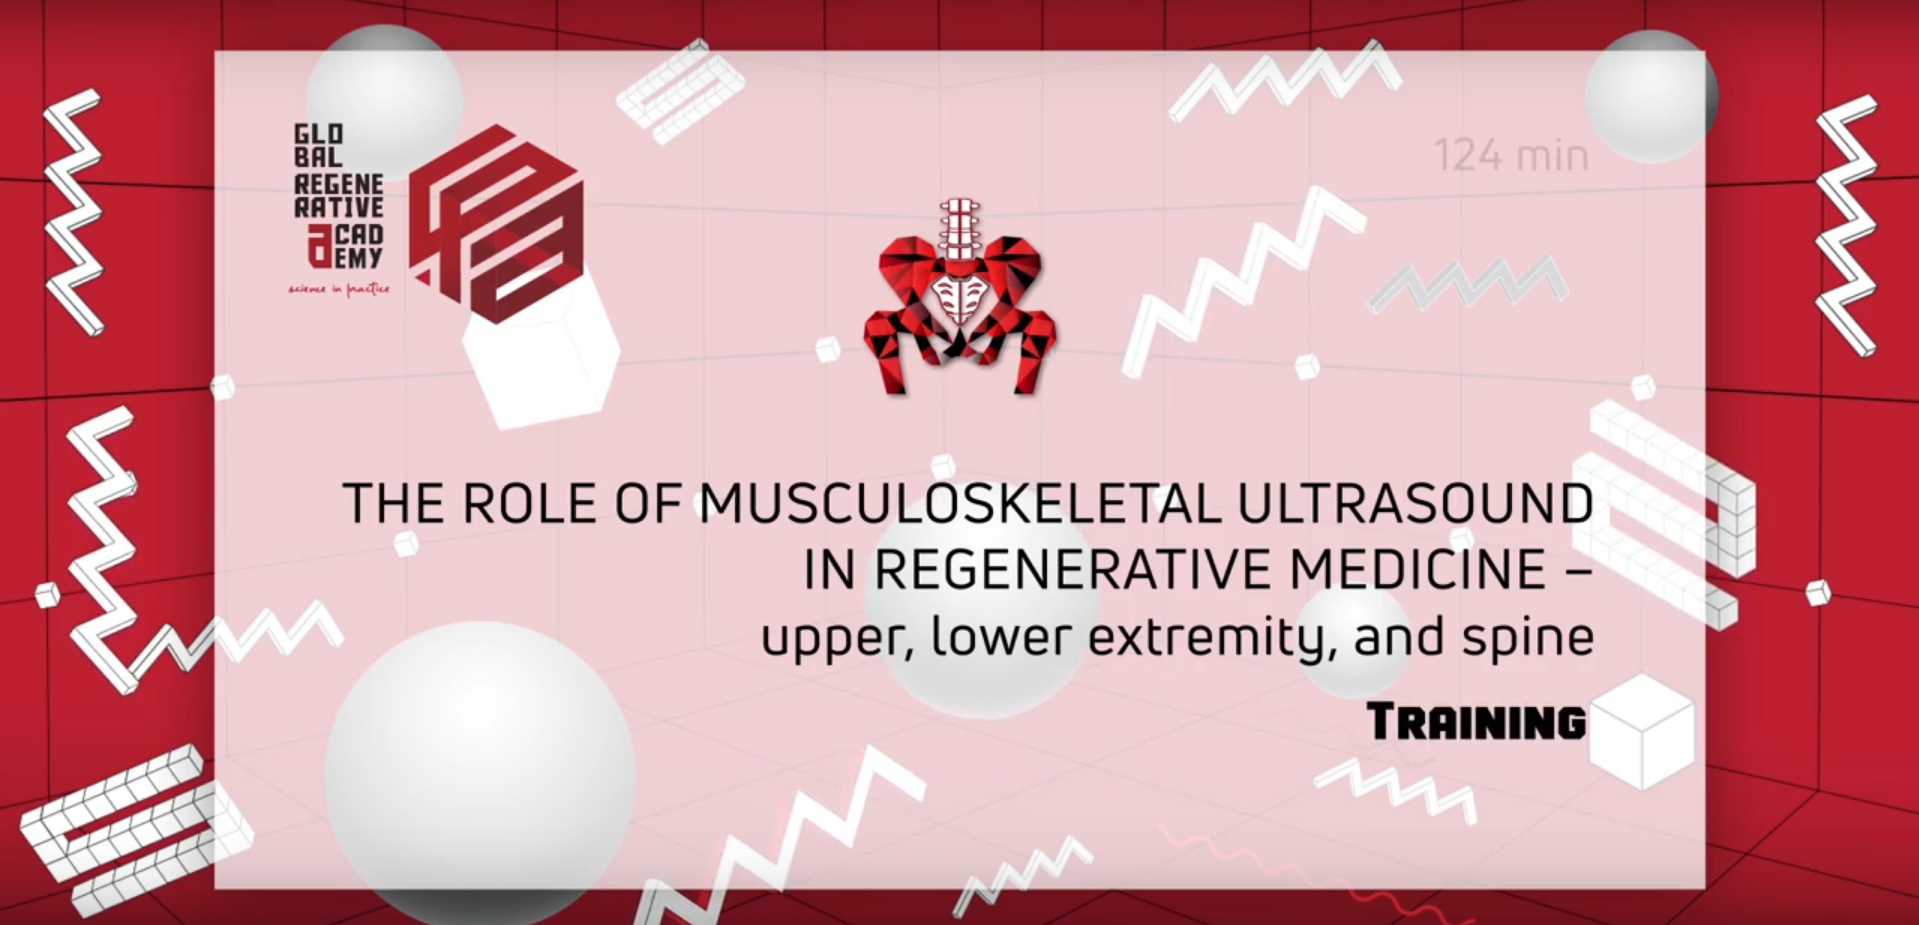 THE ROLE OF MUSCULOSKELETAL ULTRASOUND IN REGENERATIVE MEDICINE – BONE MARROW ASPIRATION TECHNIQUE, APPLICATION OF INJECTION TREATMENTS IN UPPER, LOWER EXTREMITY AND SPINE, PRP PREPARATION AND MANIPULATION